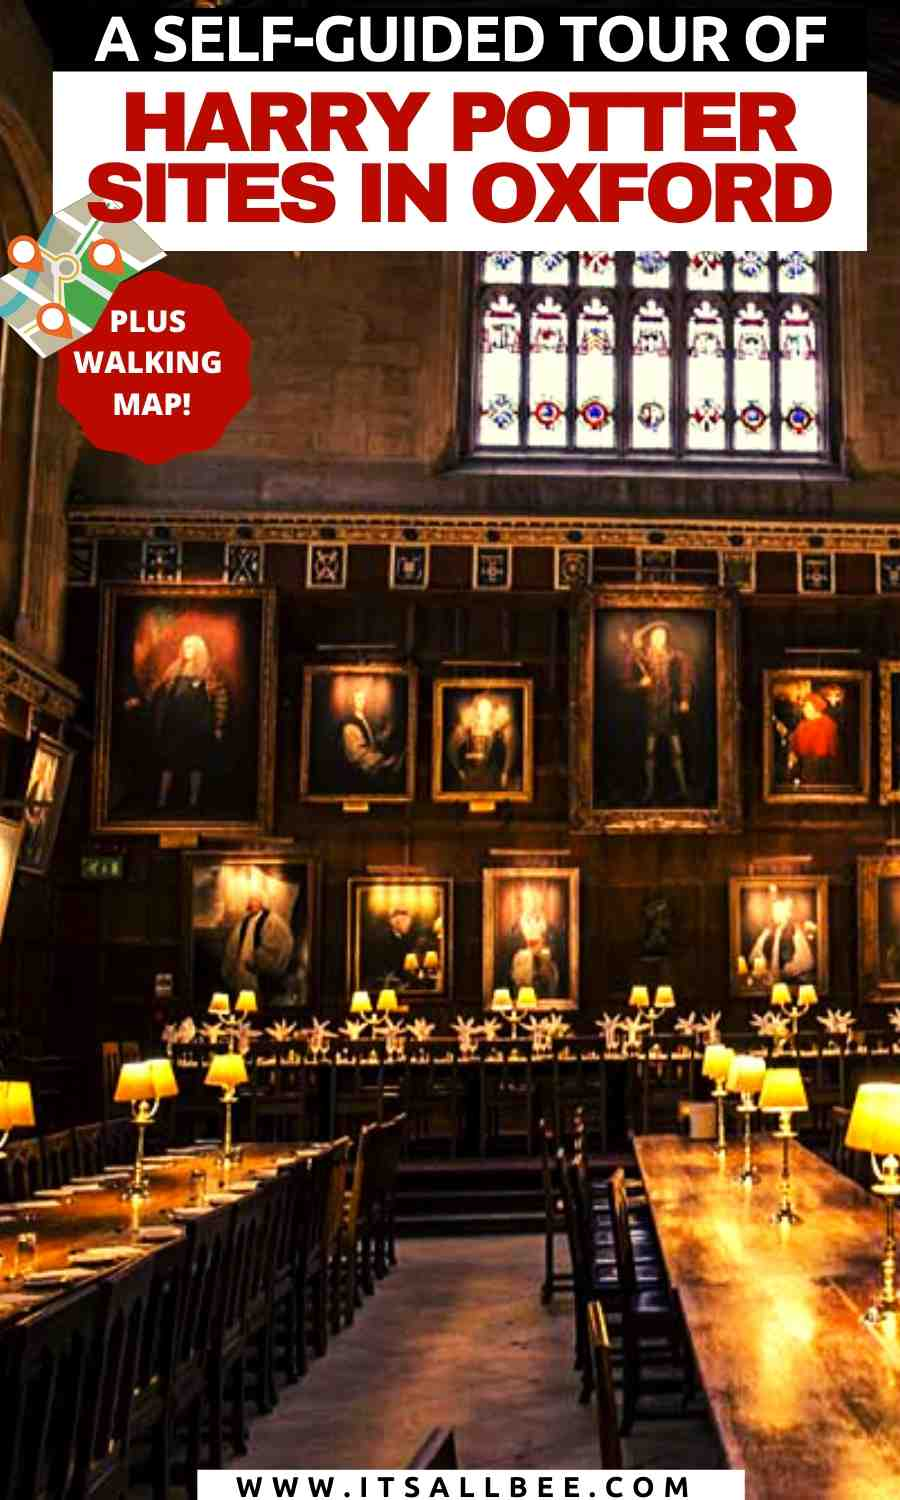 Harry Potter filming in Oxford | Harry Potter Oxford locations